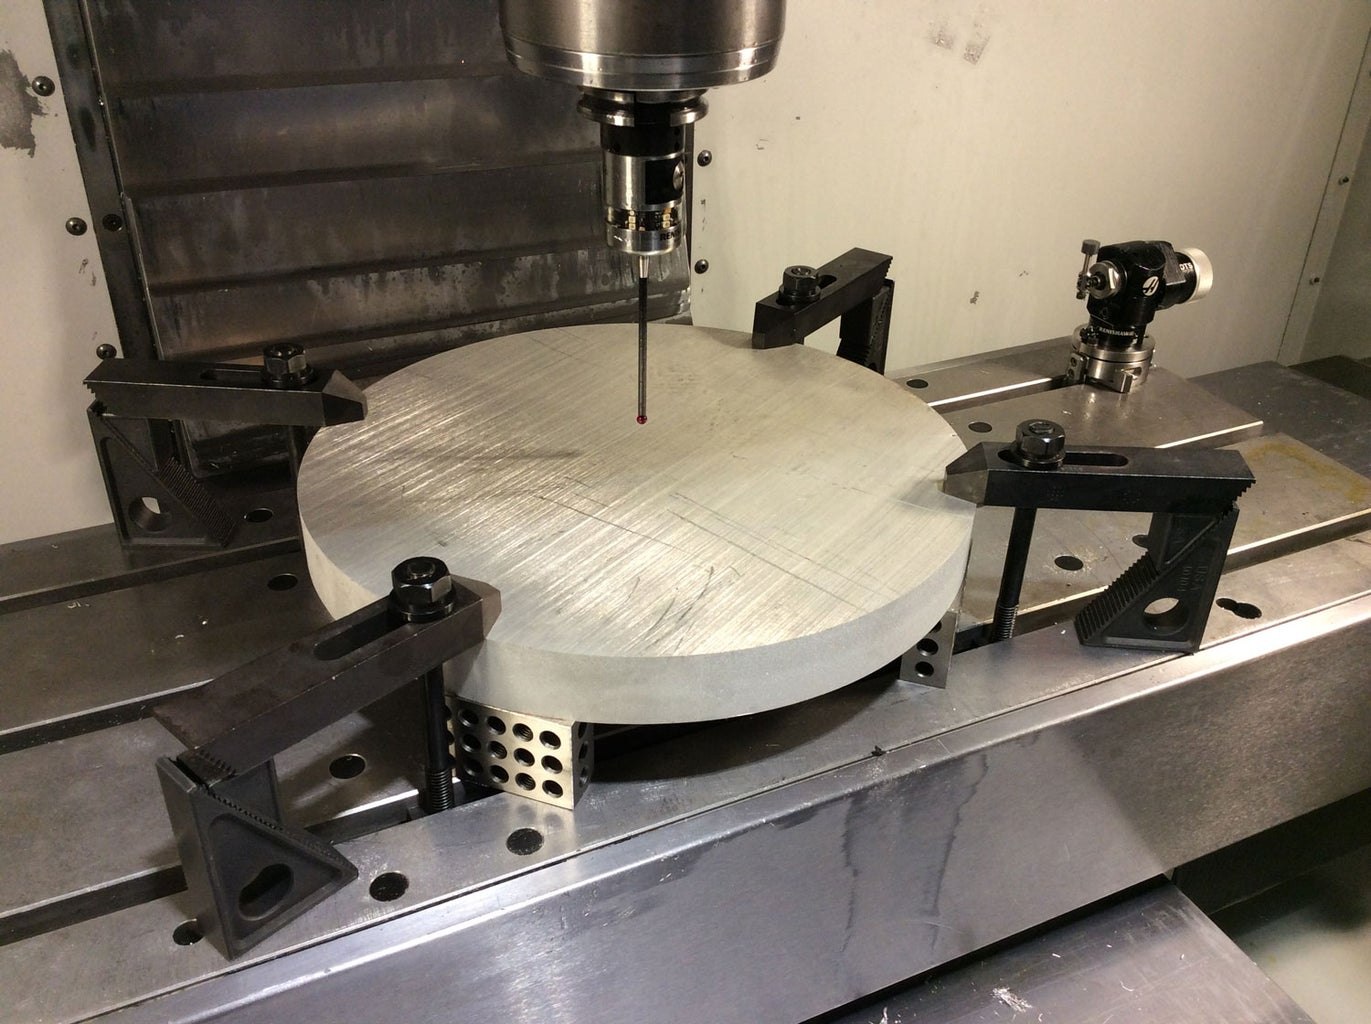 OP-1 Setup in Fusion 360 and on the Haas VF2 Milling Machine